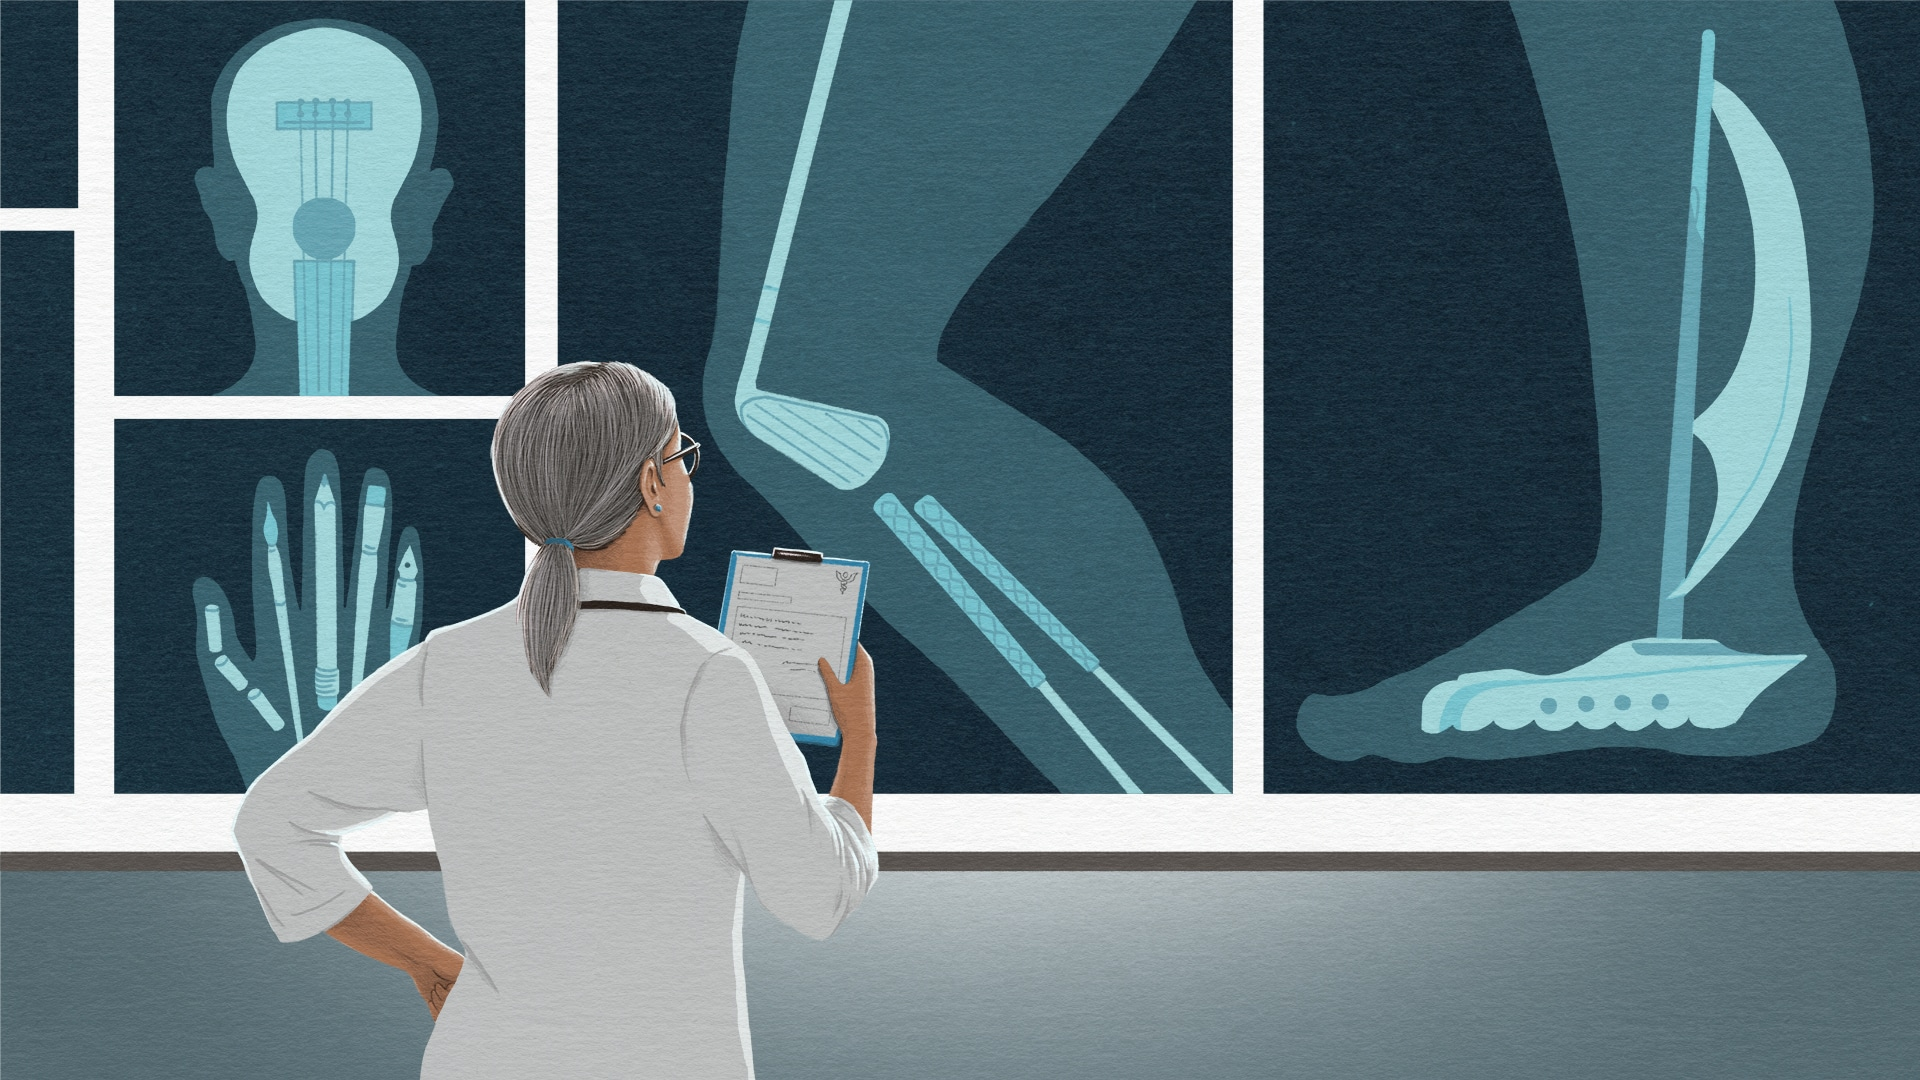 Illustration of a doctor holding a clipboard and examining x rays. But the bones in the x rays look like retirement-related activities.